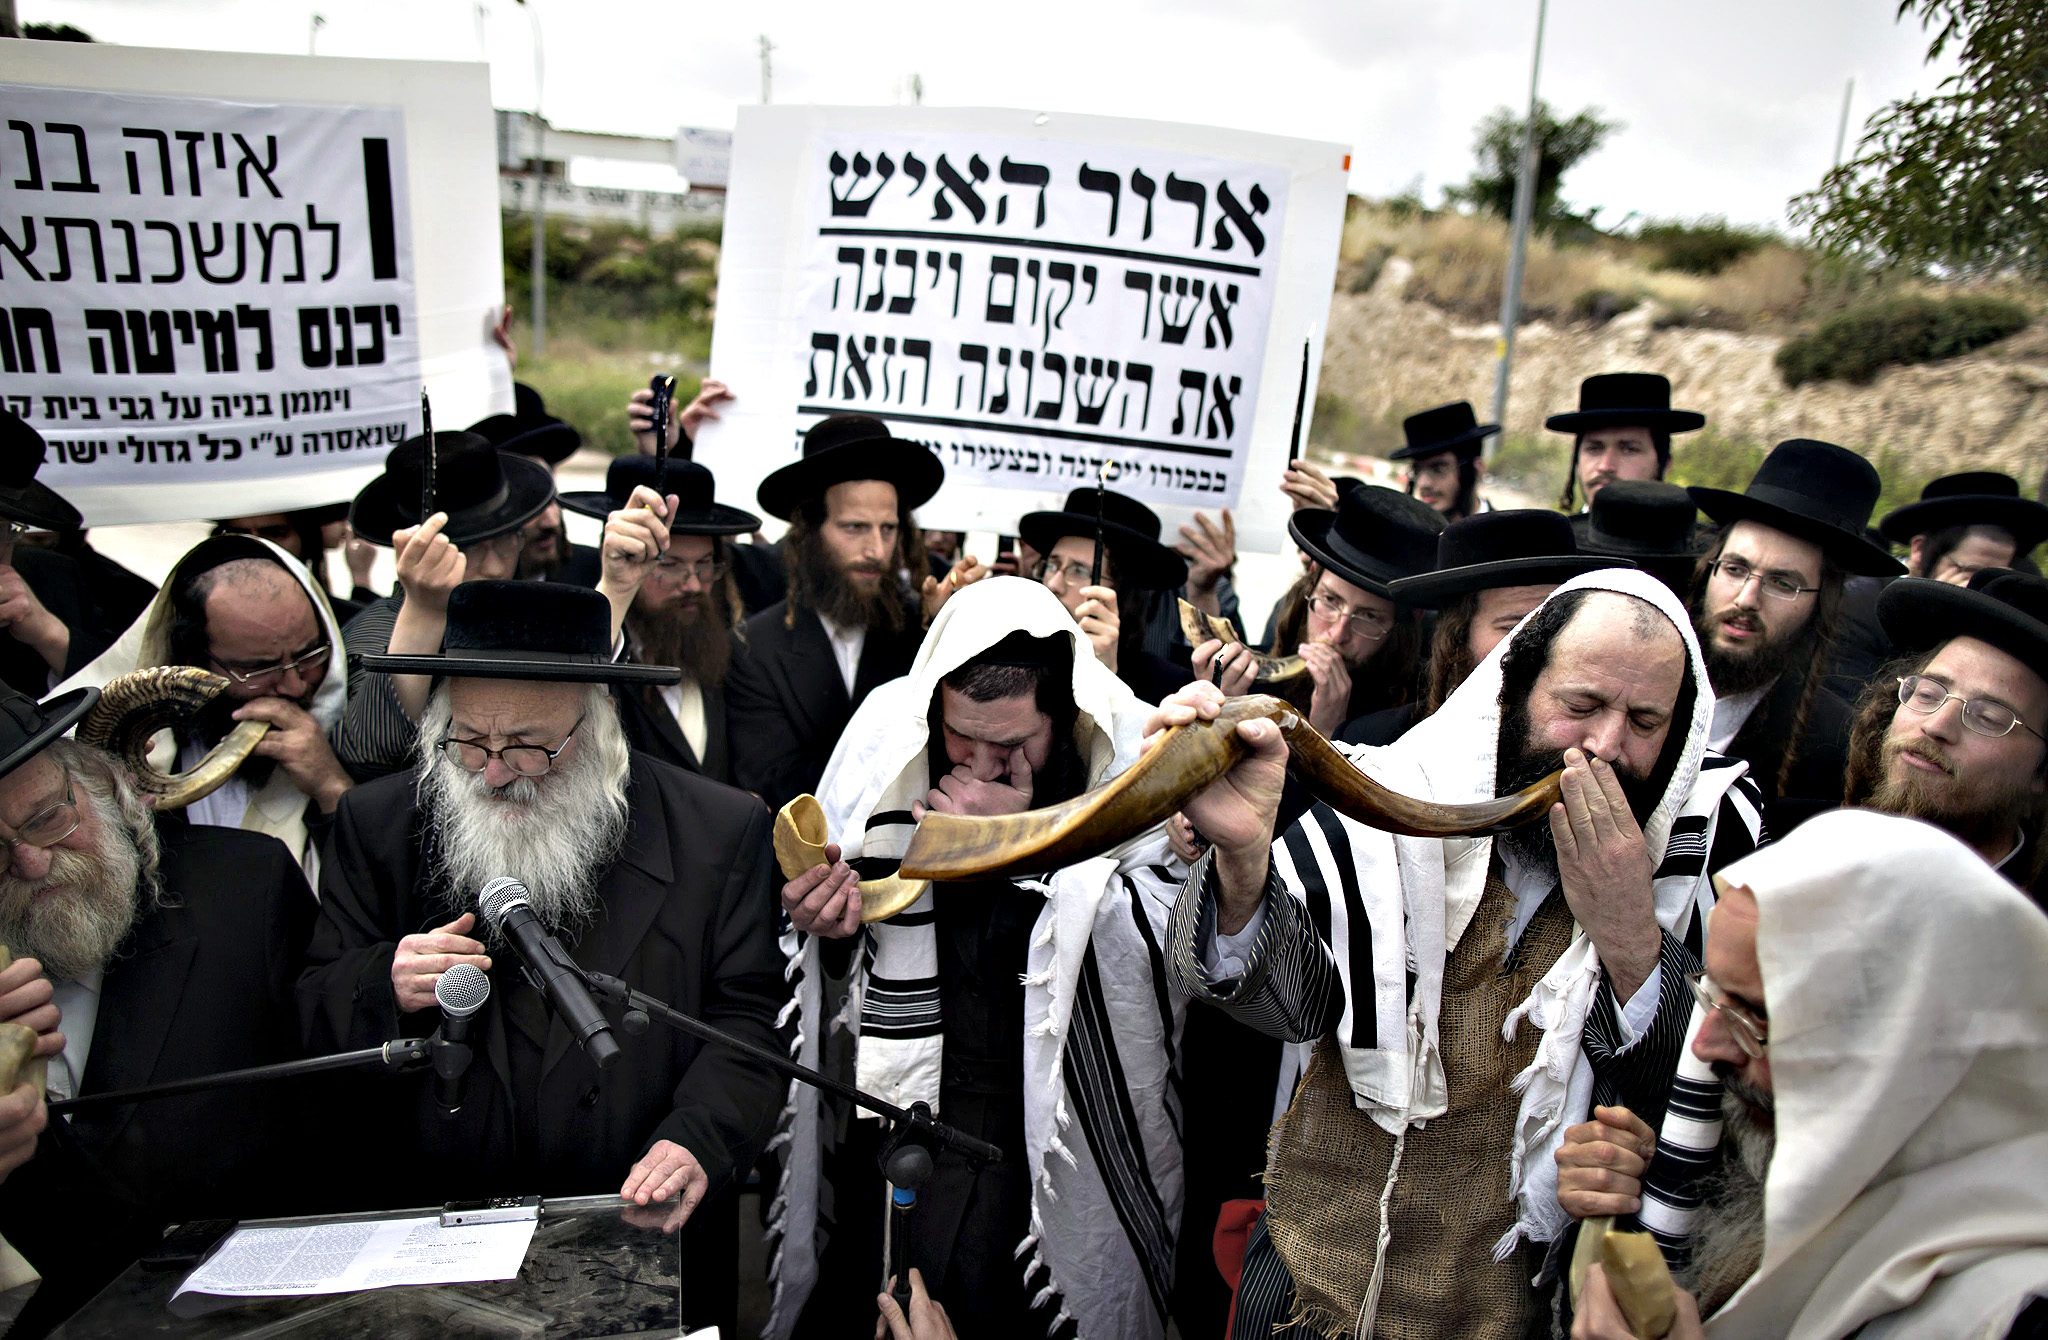 An Ultra-Orthodox Jewish Rabbis wear burlap sacks as a sign of mourning and blowing the Shofar  during a demonstration Prayer in Beit Shemesh, Israel, 16 April 2015. Hundreds of Ultra-Orthodox Jews protested against the construction of new housing units, believing they would be built at the site of ancient Jewish graves.